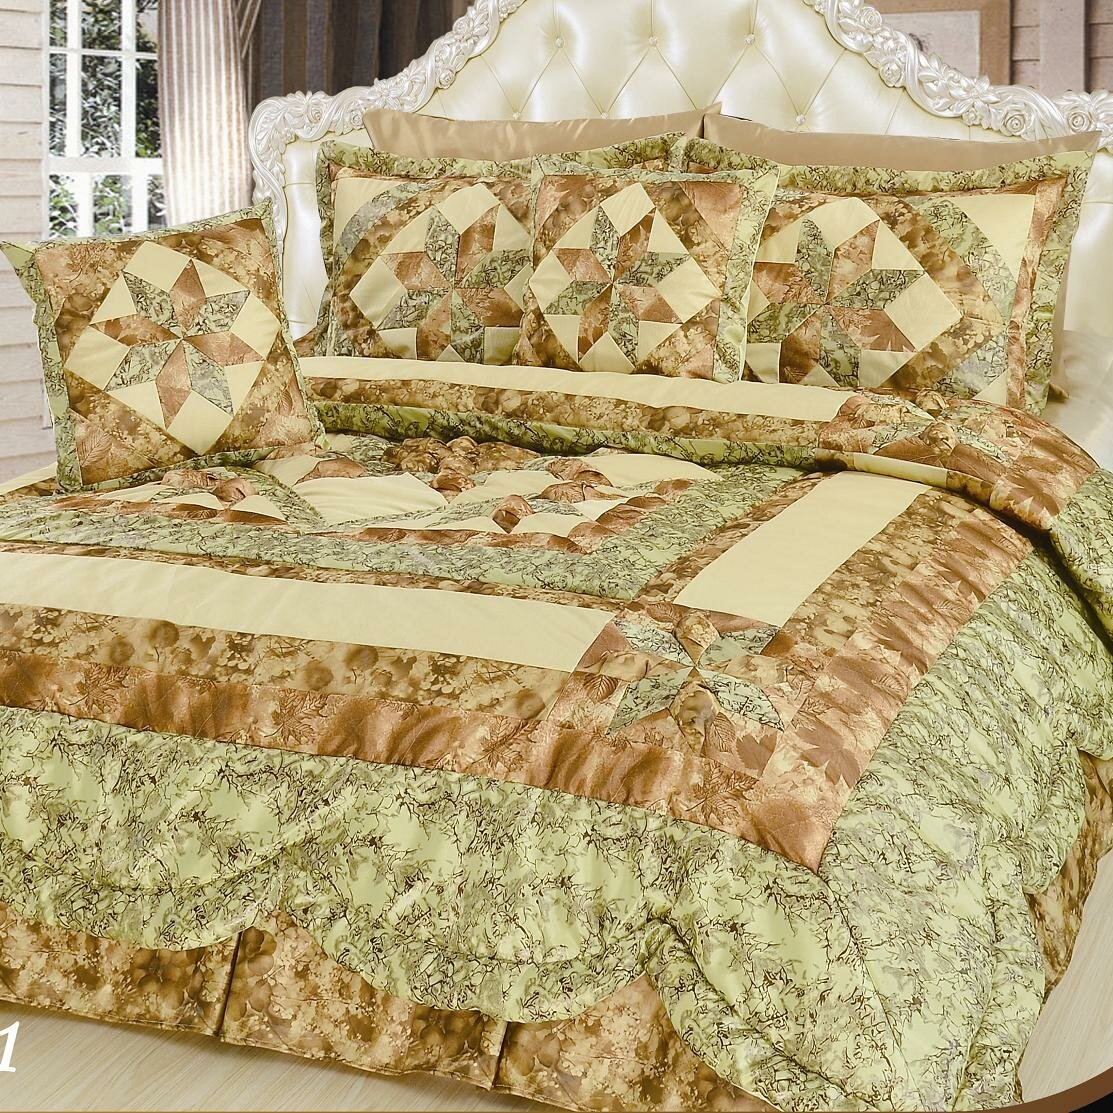 DaDa Bedding Runway 5 Piece Queen Comforter Set | Wayfair